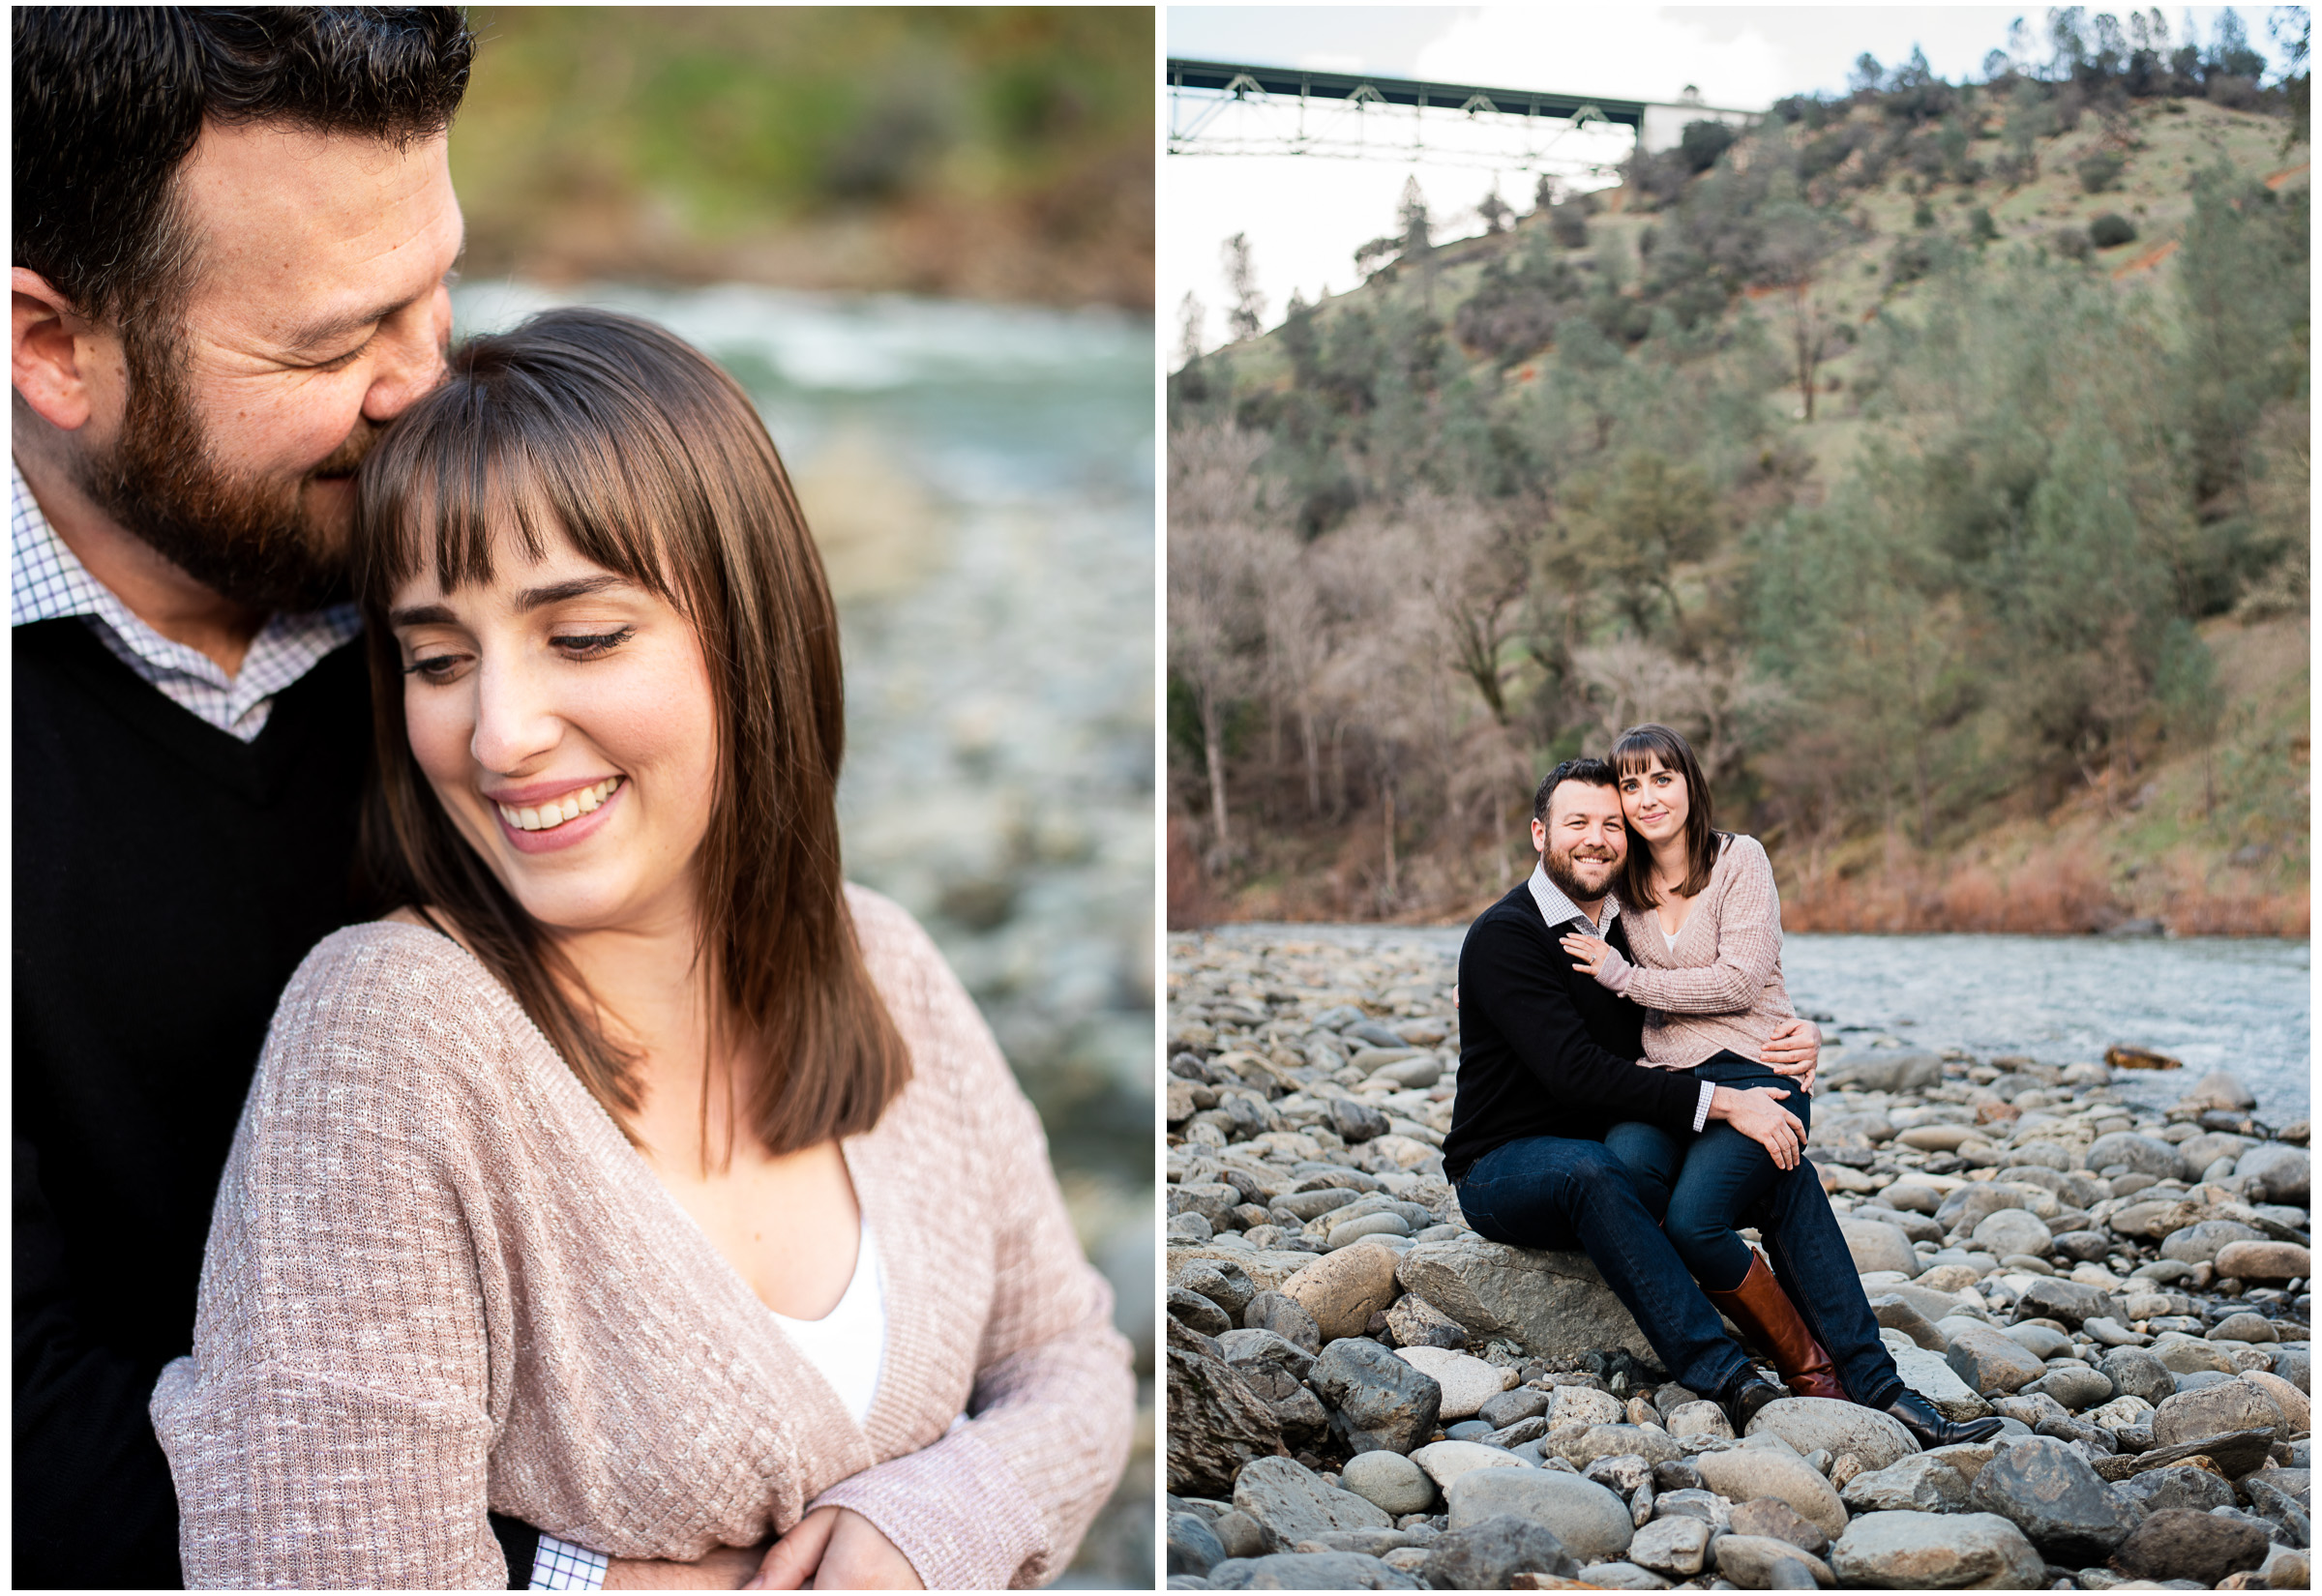 Auburn Engagement Session - Sacramento Photographer - Justin Wilcox Photography - 5.jpg